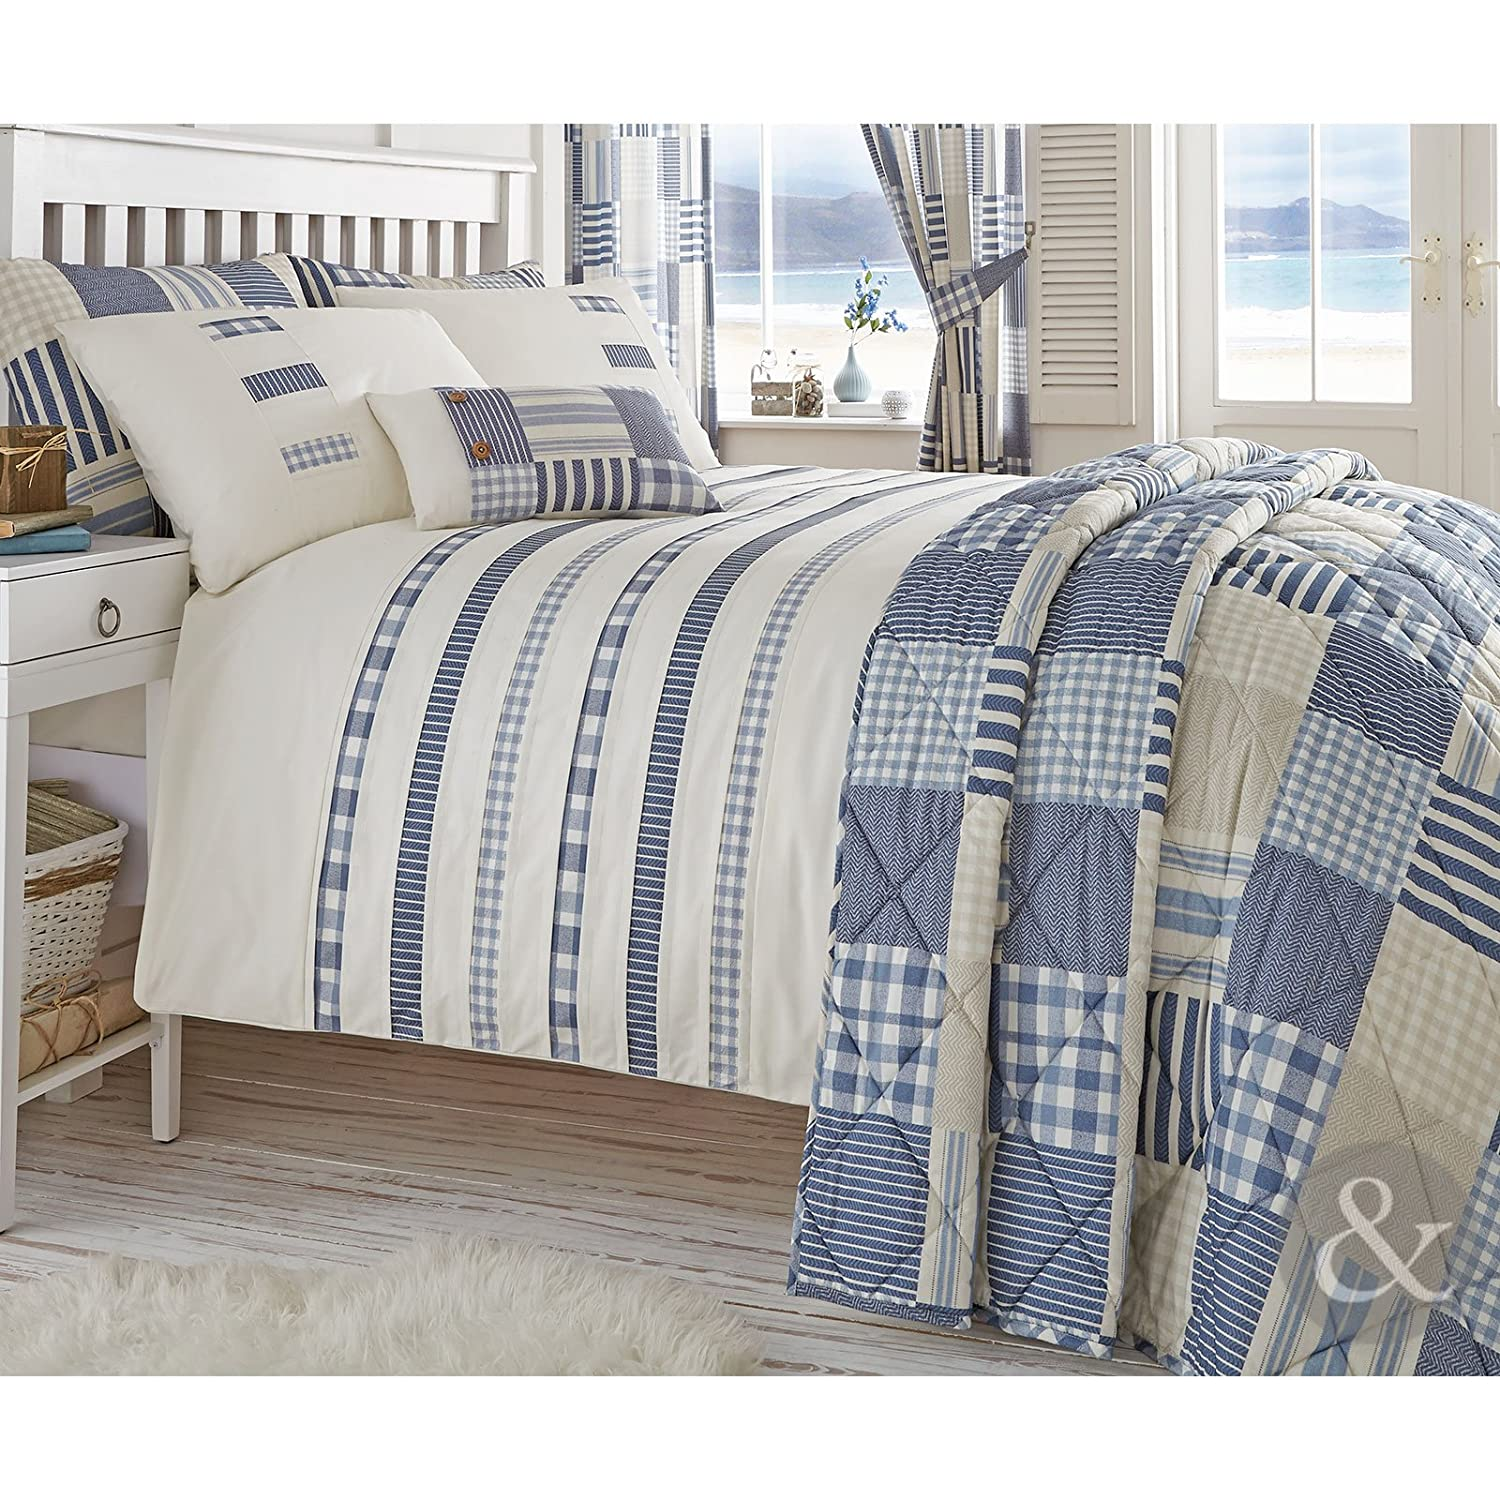 bed powderbluebed in bag blue powder a comforter swamp comforters camo company set bedding shop the